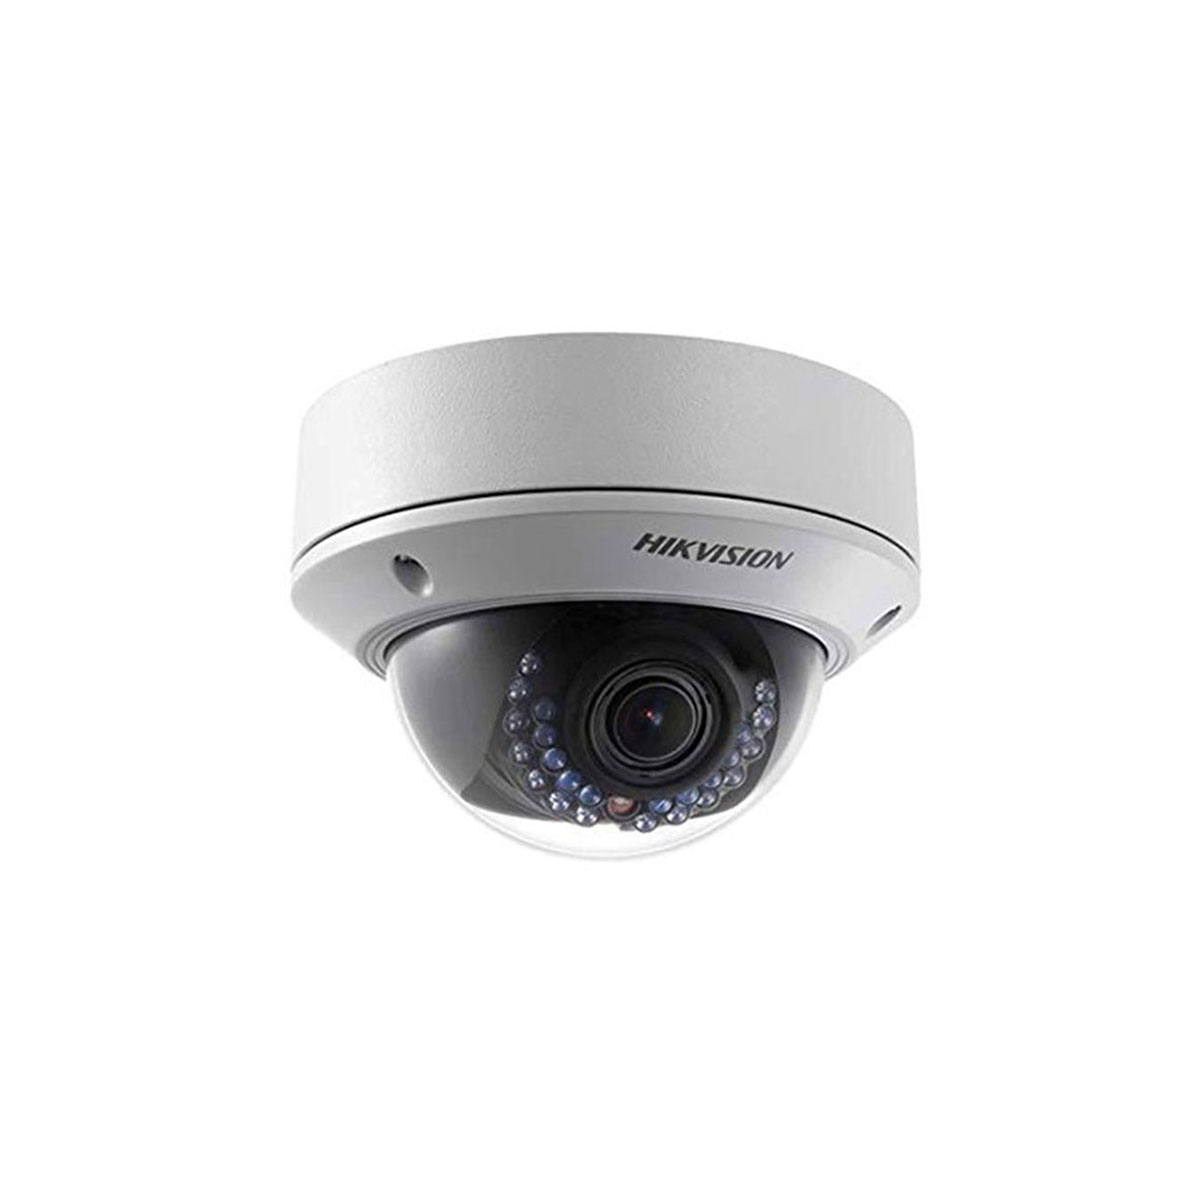 Cámara Hikvision IP DS-2CD2742FWD-I Domo 4MP